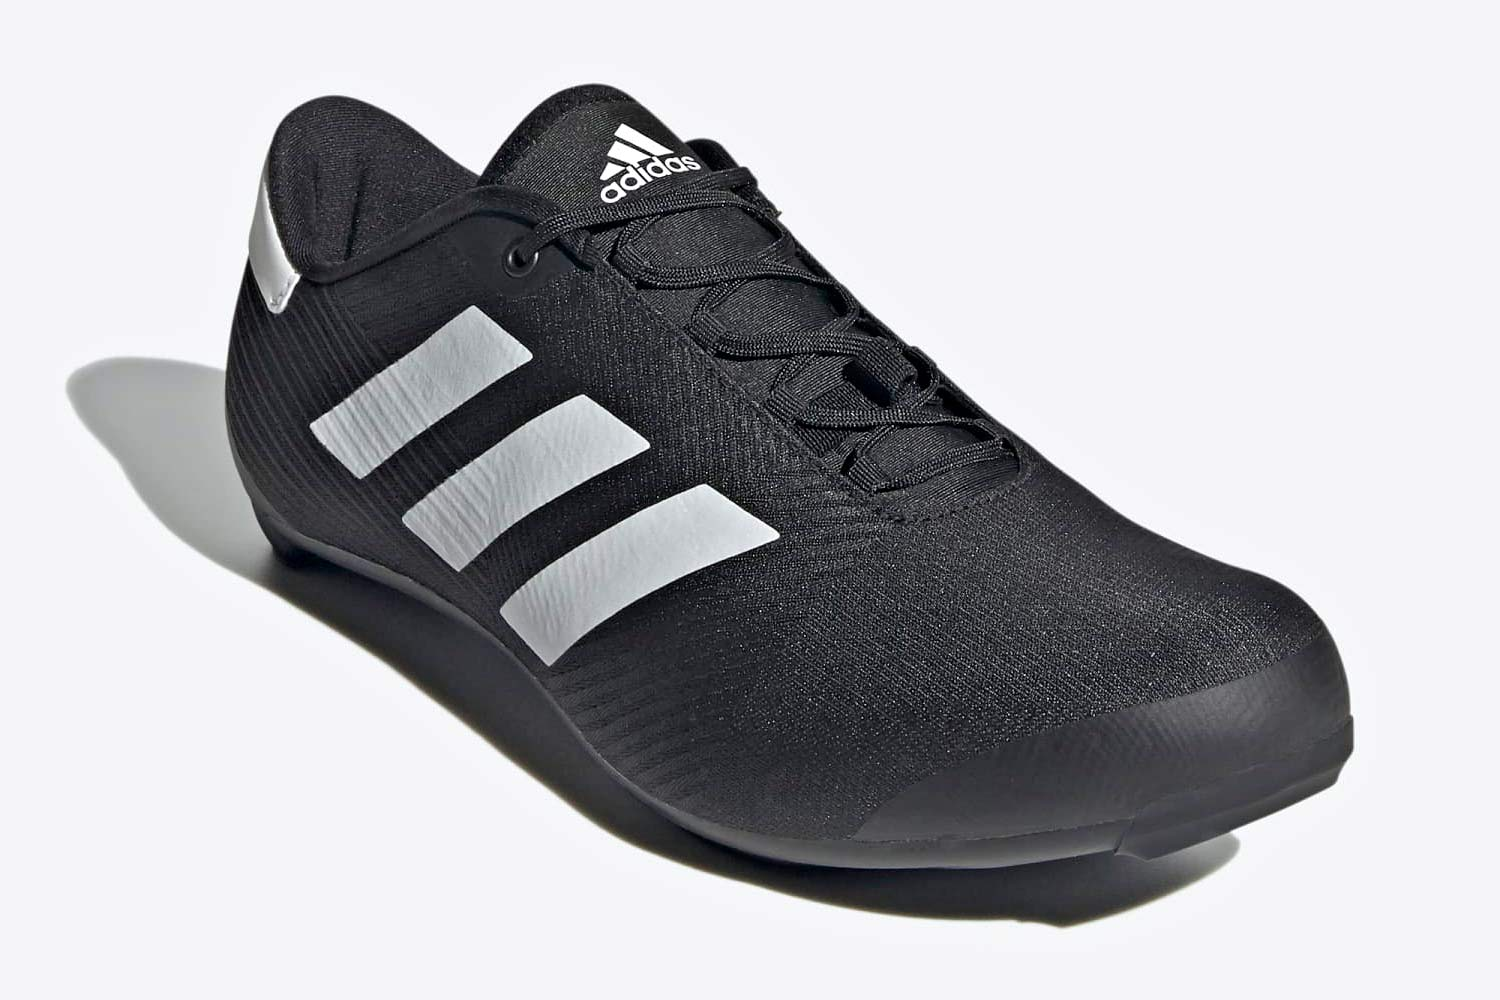 Adidas The Road Cycling Shoes, all-new mid-price lace-up soccer football style road bike shoe,angled